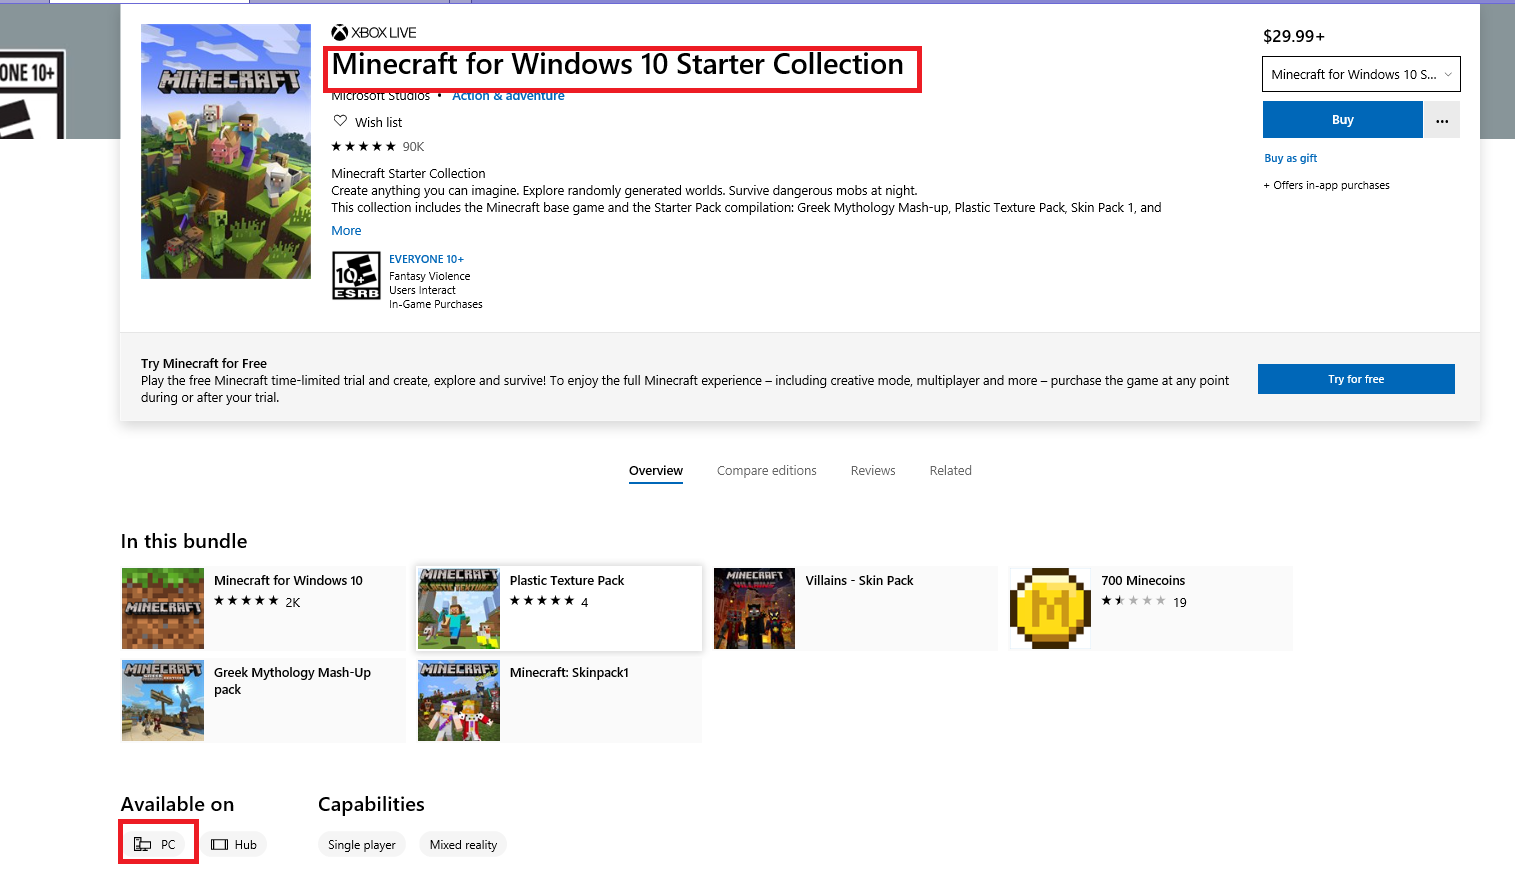 Unable To Install Minecraft For Windows 10 Starter Collection